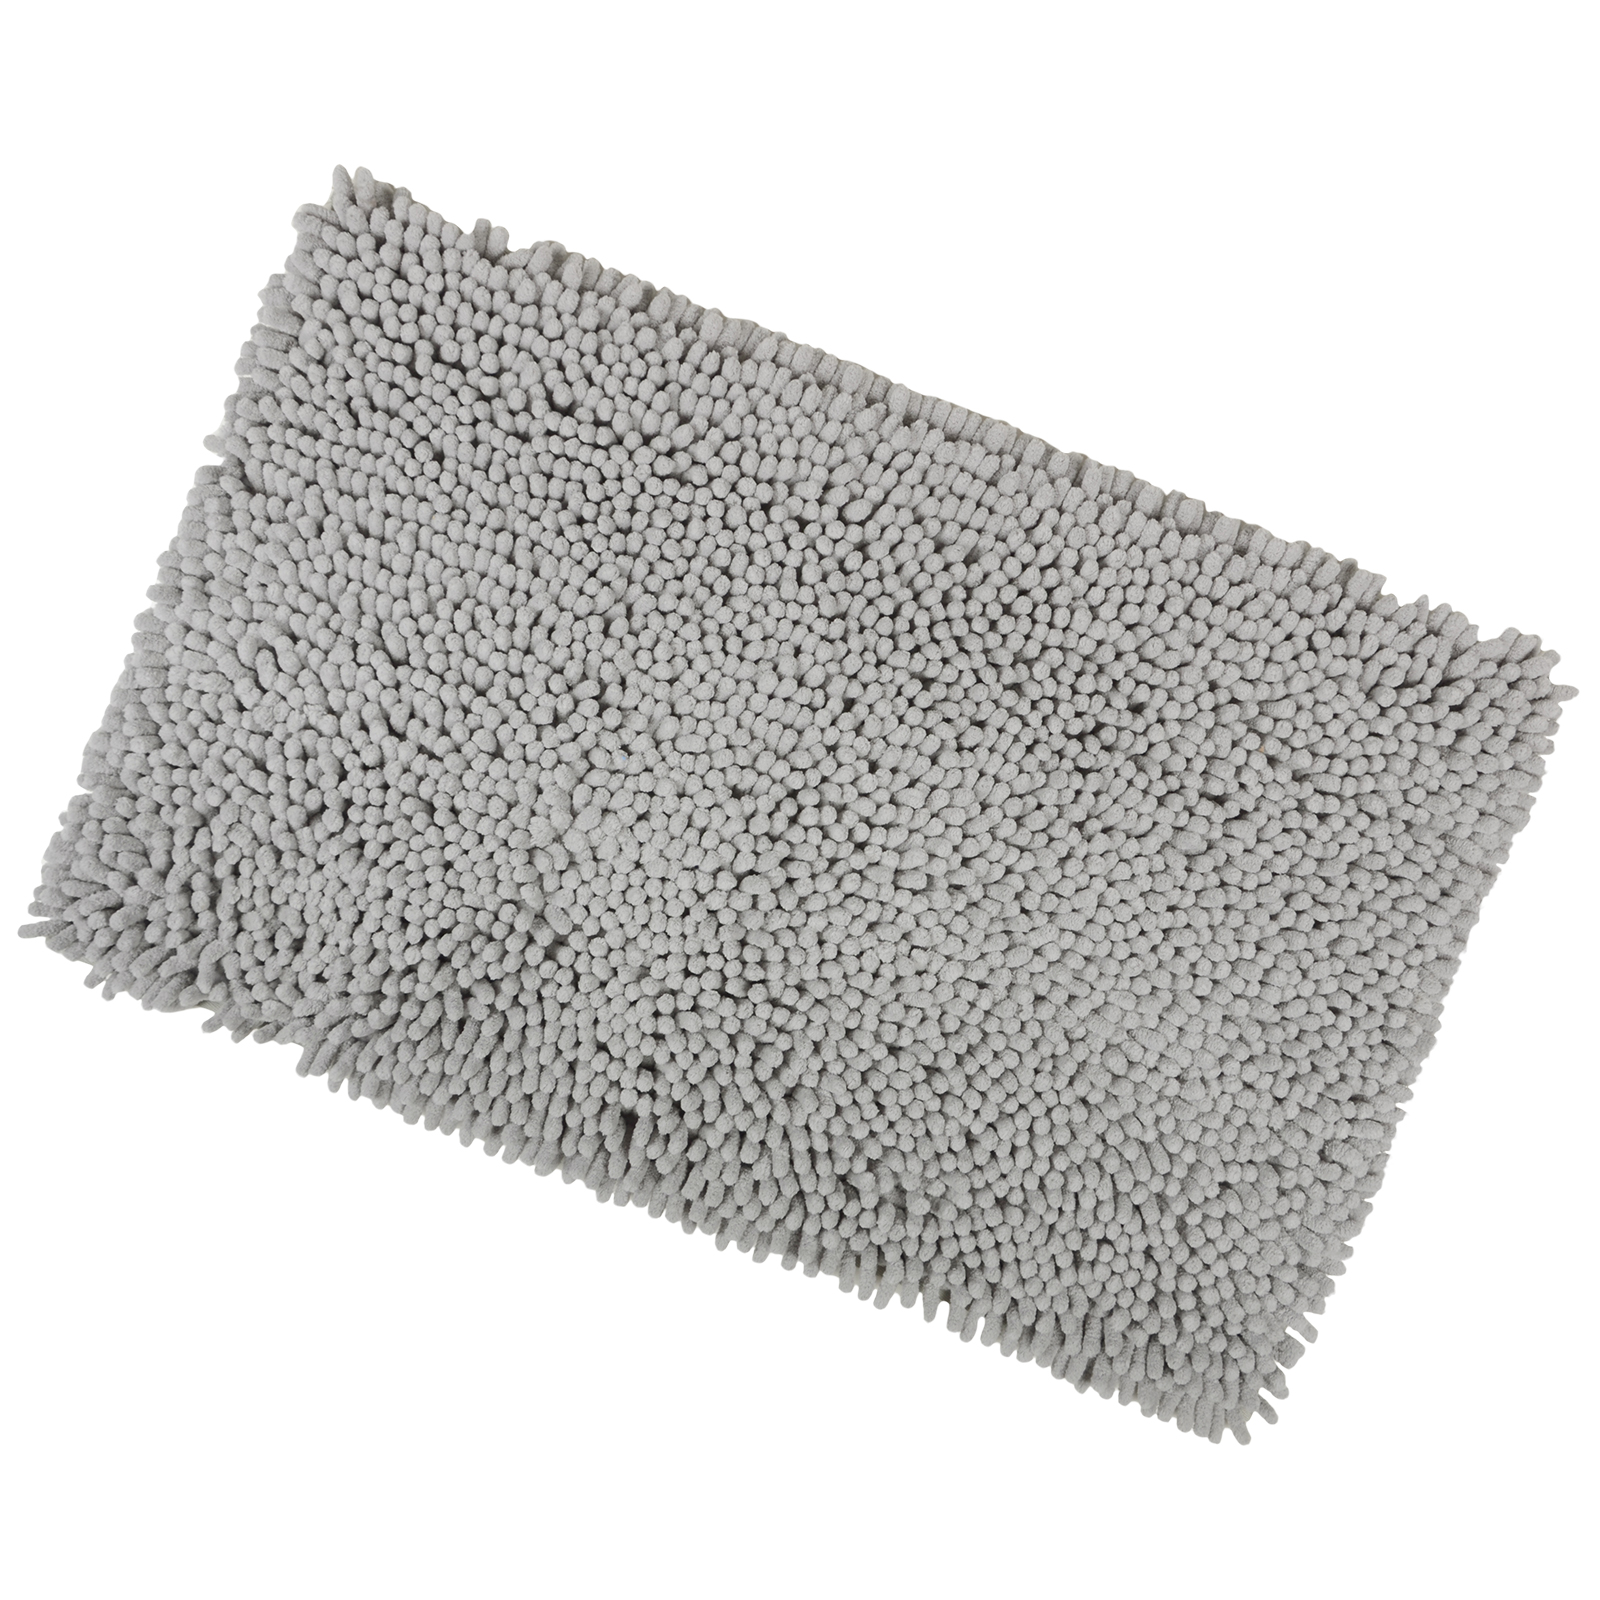 shaggy microfibre bathroom shower bath mat rug non slip teak shower mat in shower and bath mats